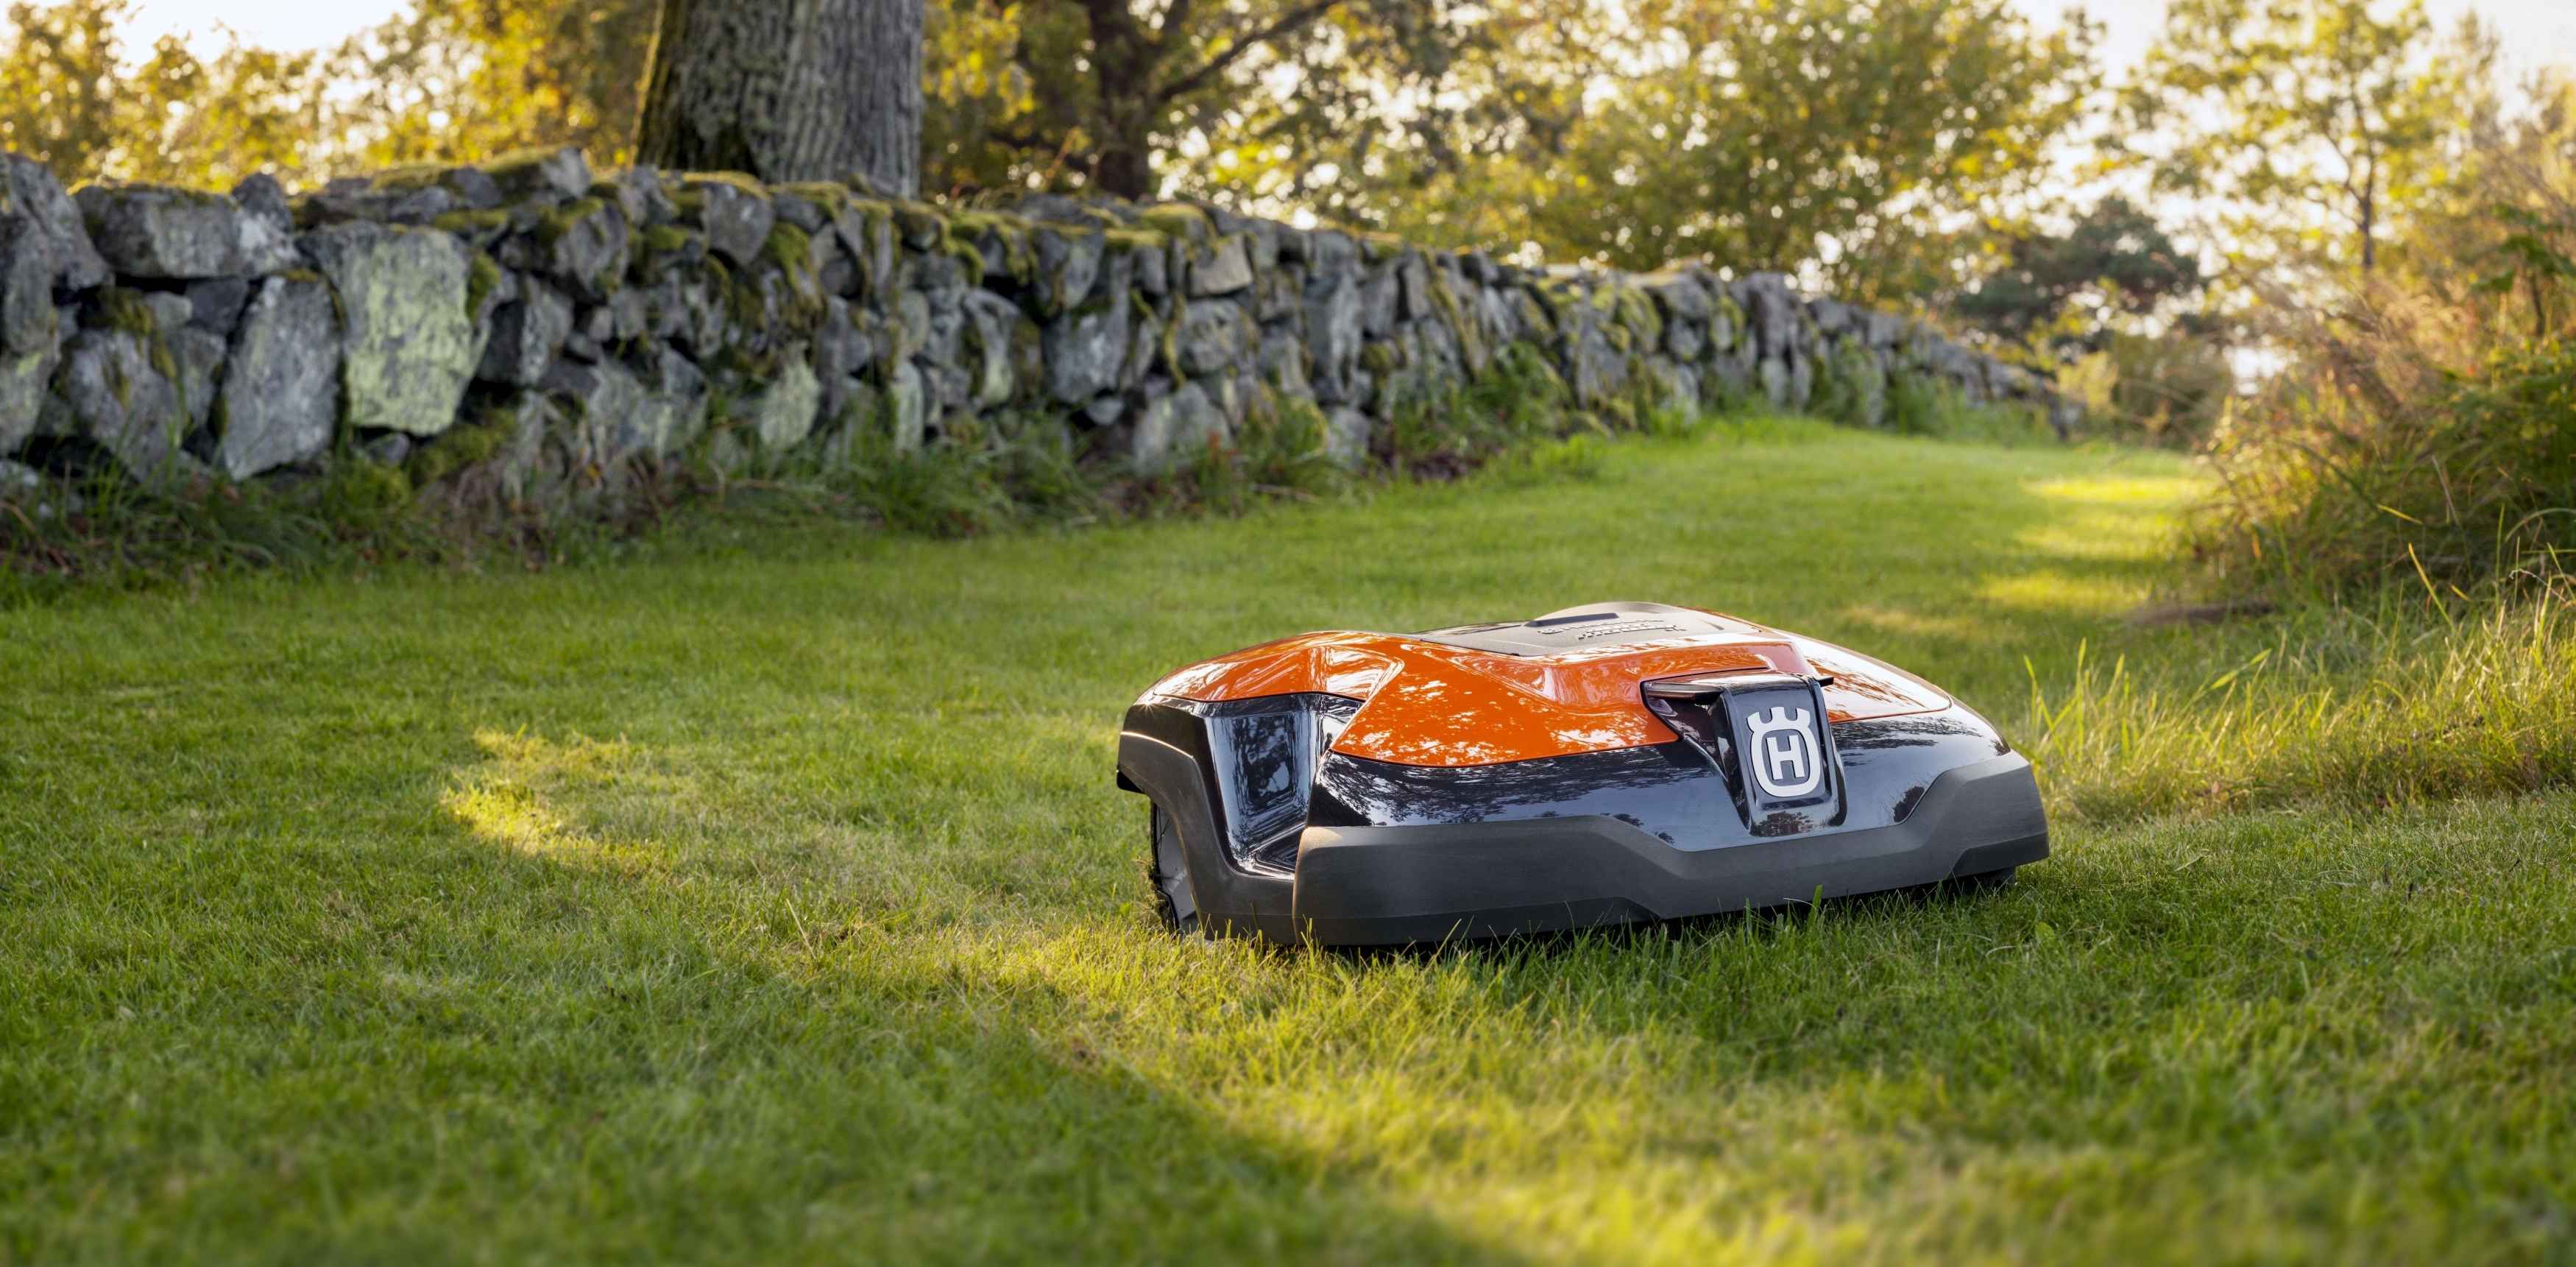 Robotic Automower – Husqvarna